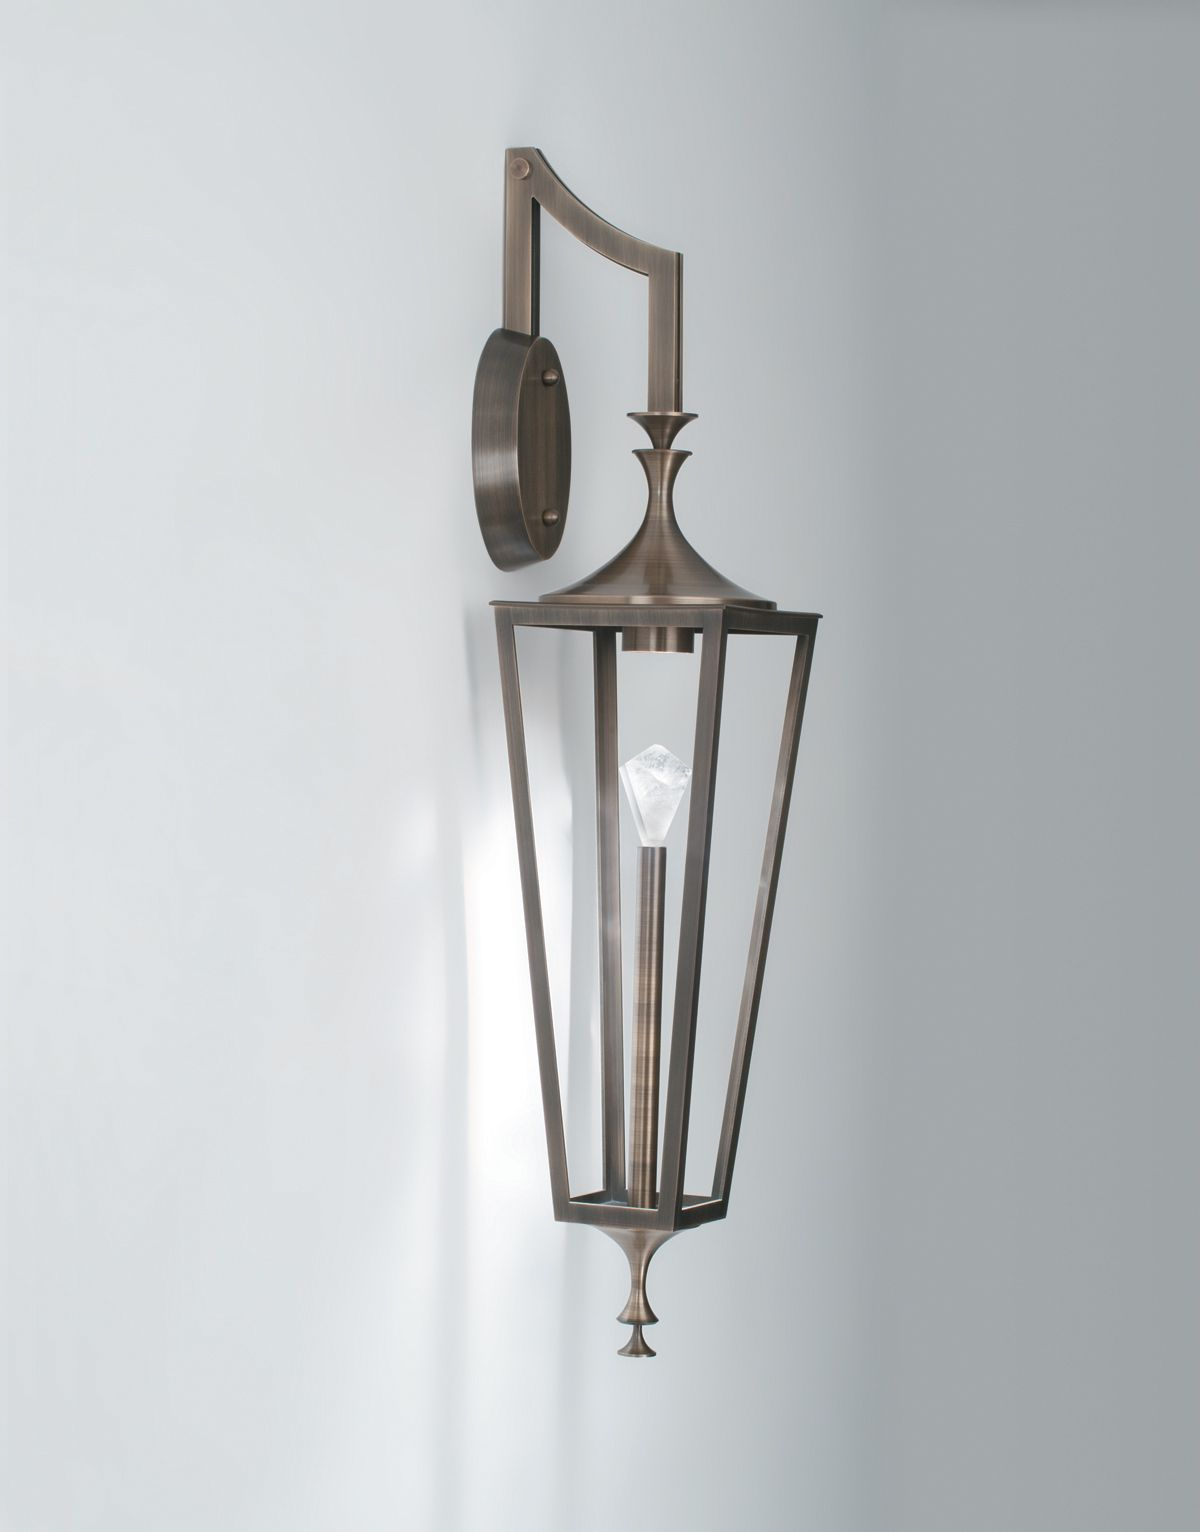 Boyd Lighting S Exterior Regent Sconce Was Designed By Roger Thomas It Has An Open Structure That Is Sure To Surprise And Delight This Fixture